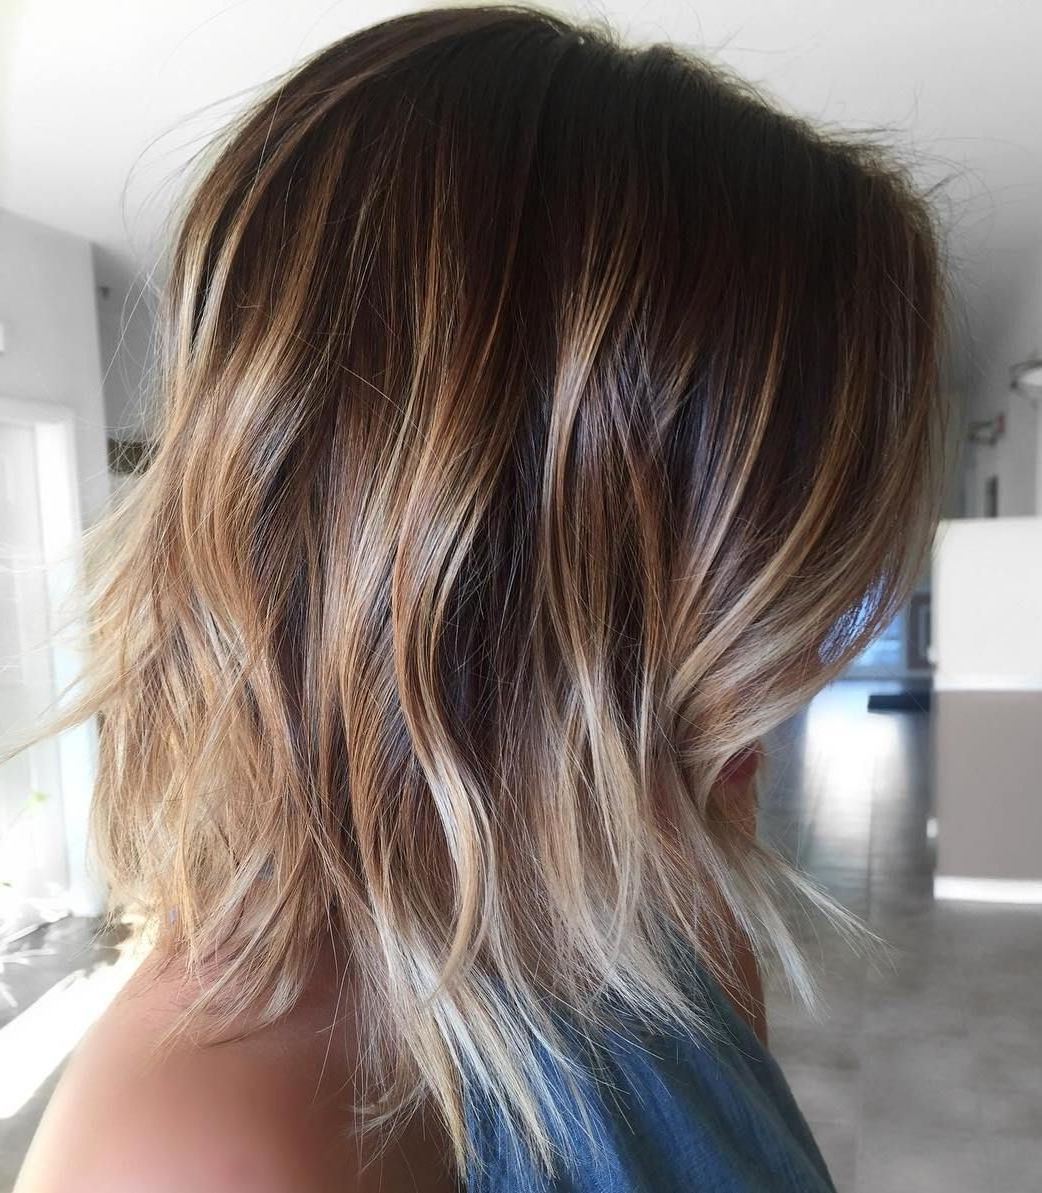 Pin On Hair Intended For Cinnamon Balayage Bob Hairstyles (View 7 of 20)